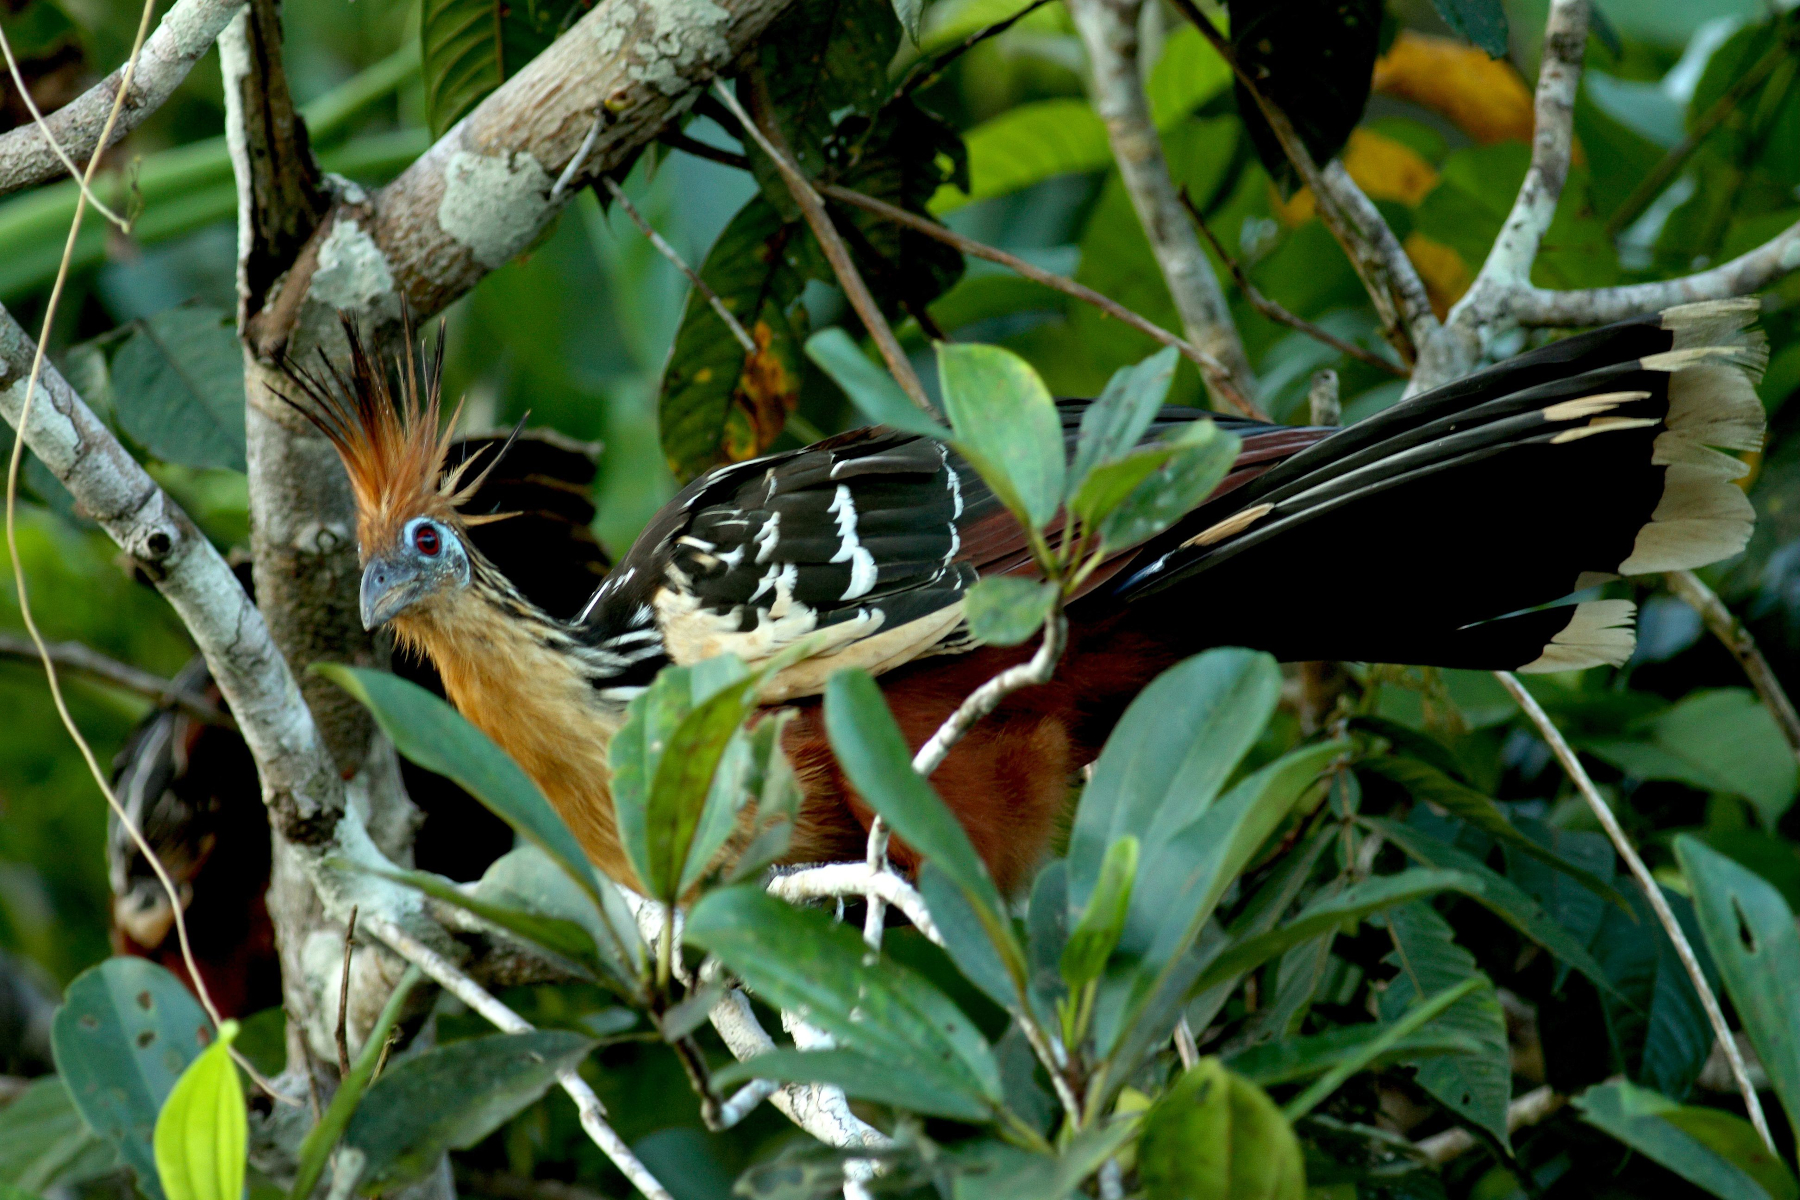 The hoatzin inhabits the moist tropical forests of South America. Photo: Jesper Sonne/CMEC